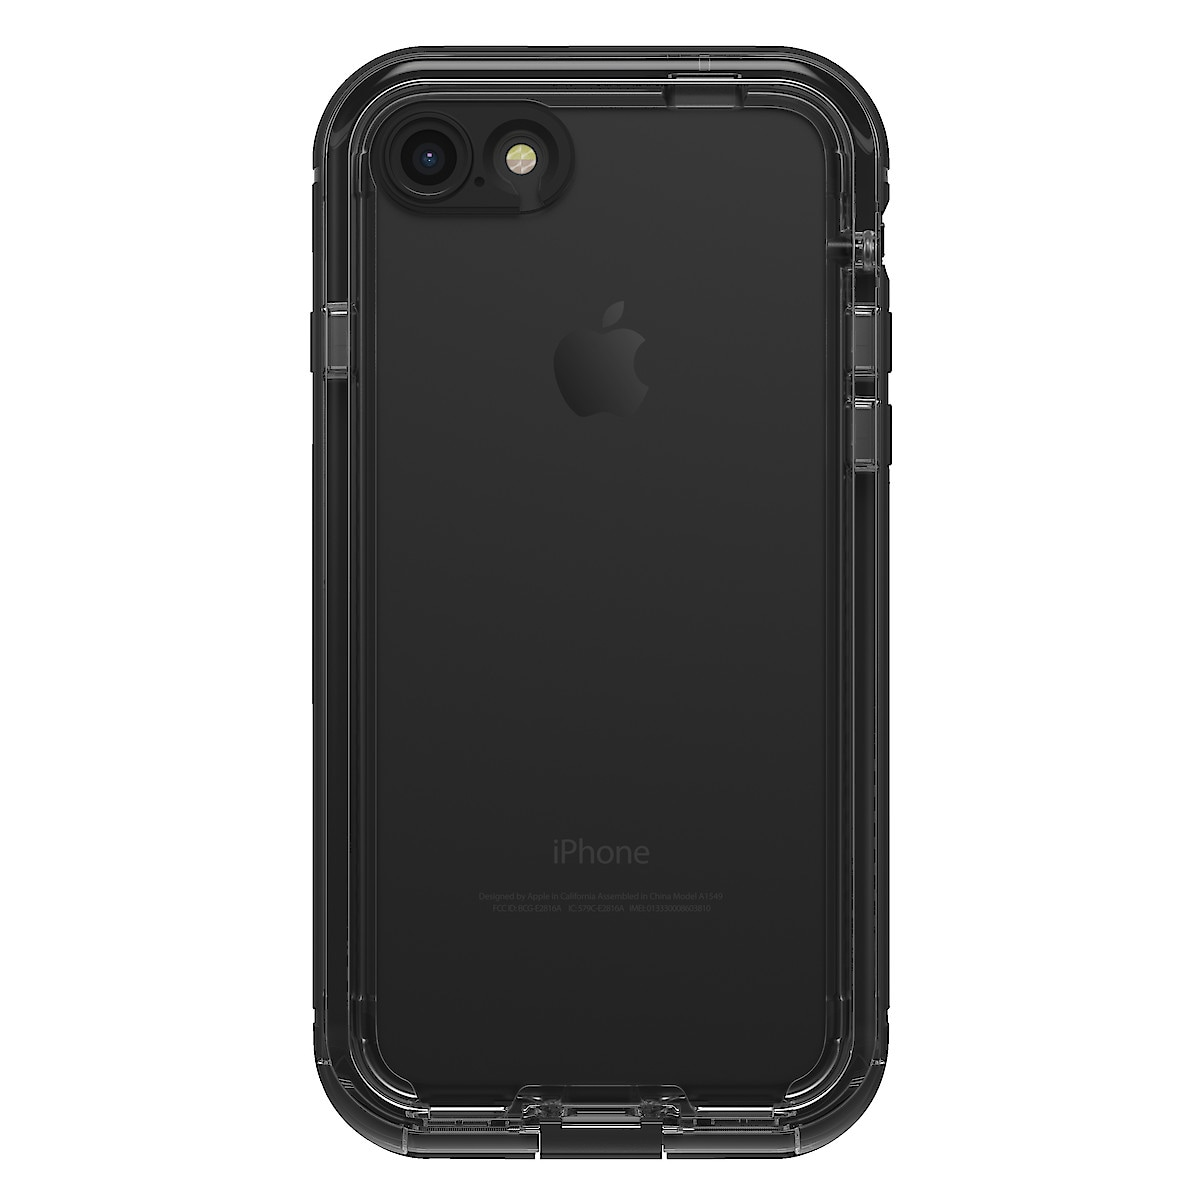 Lifeproof Nuud Mobile Phone Case for iPhone 7